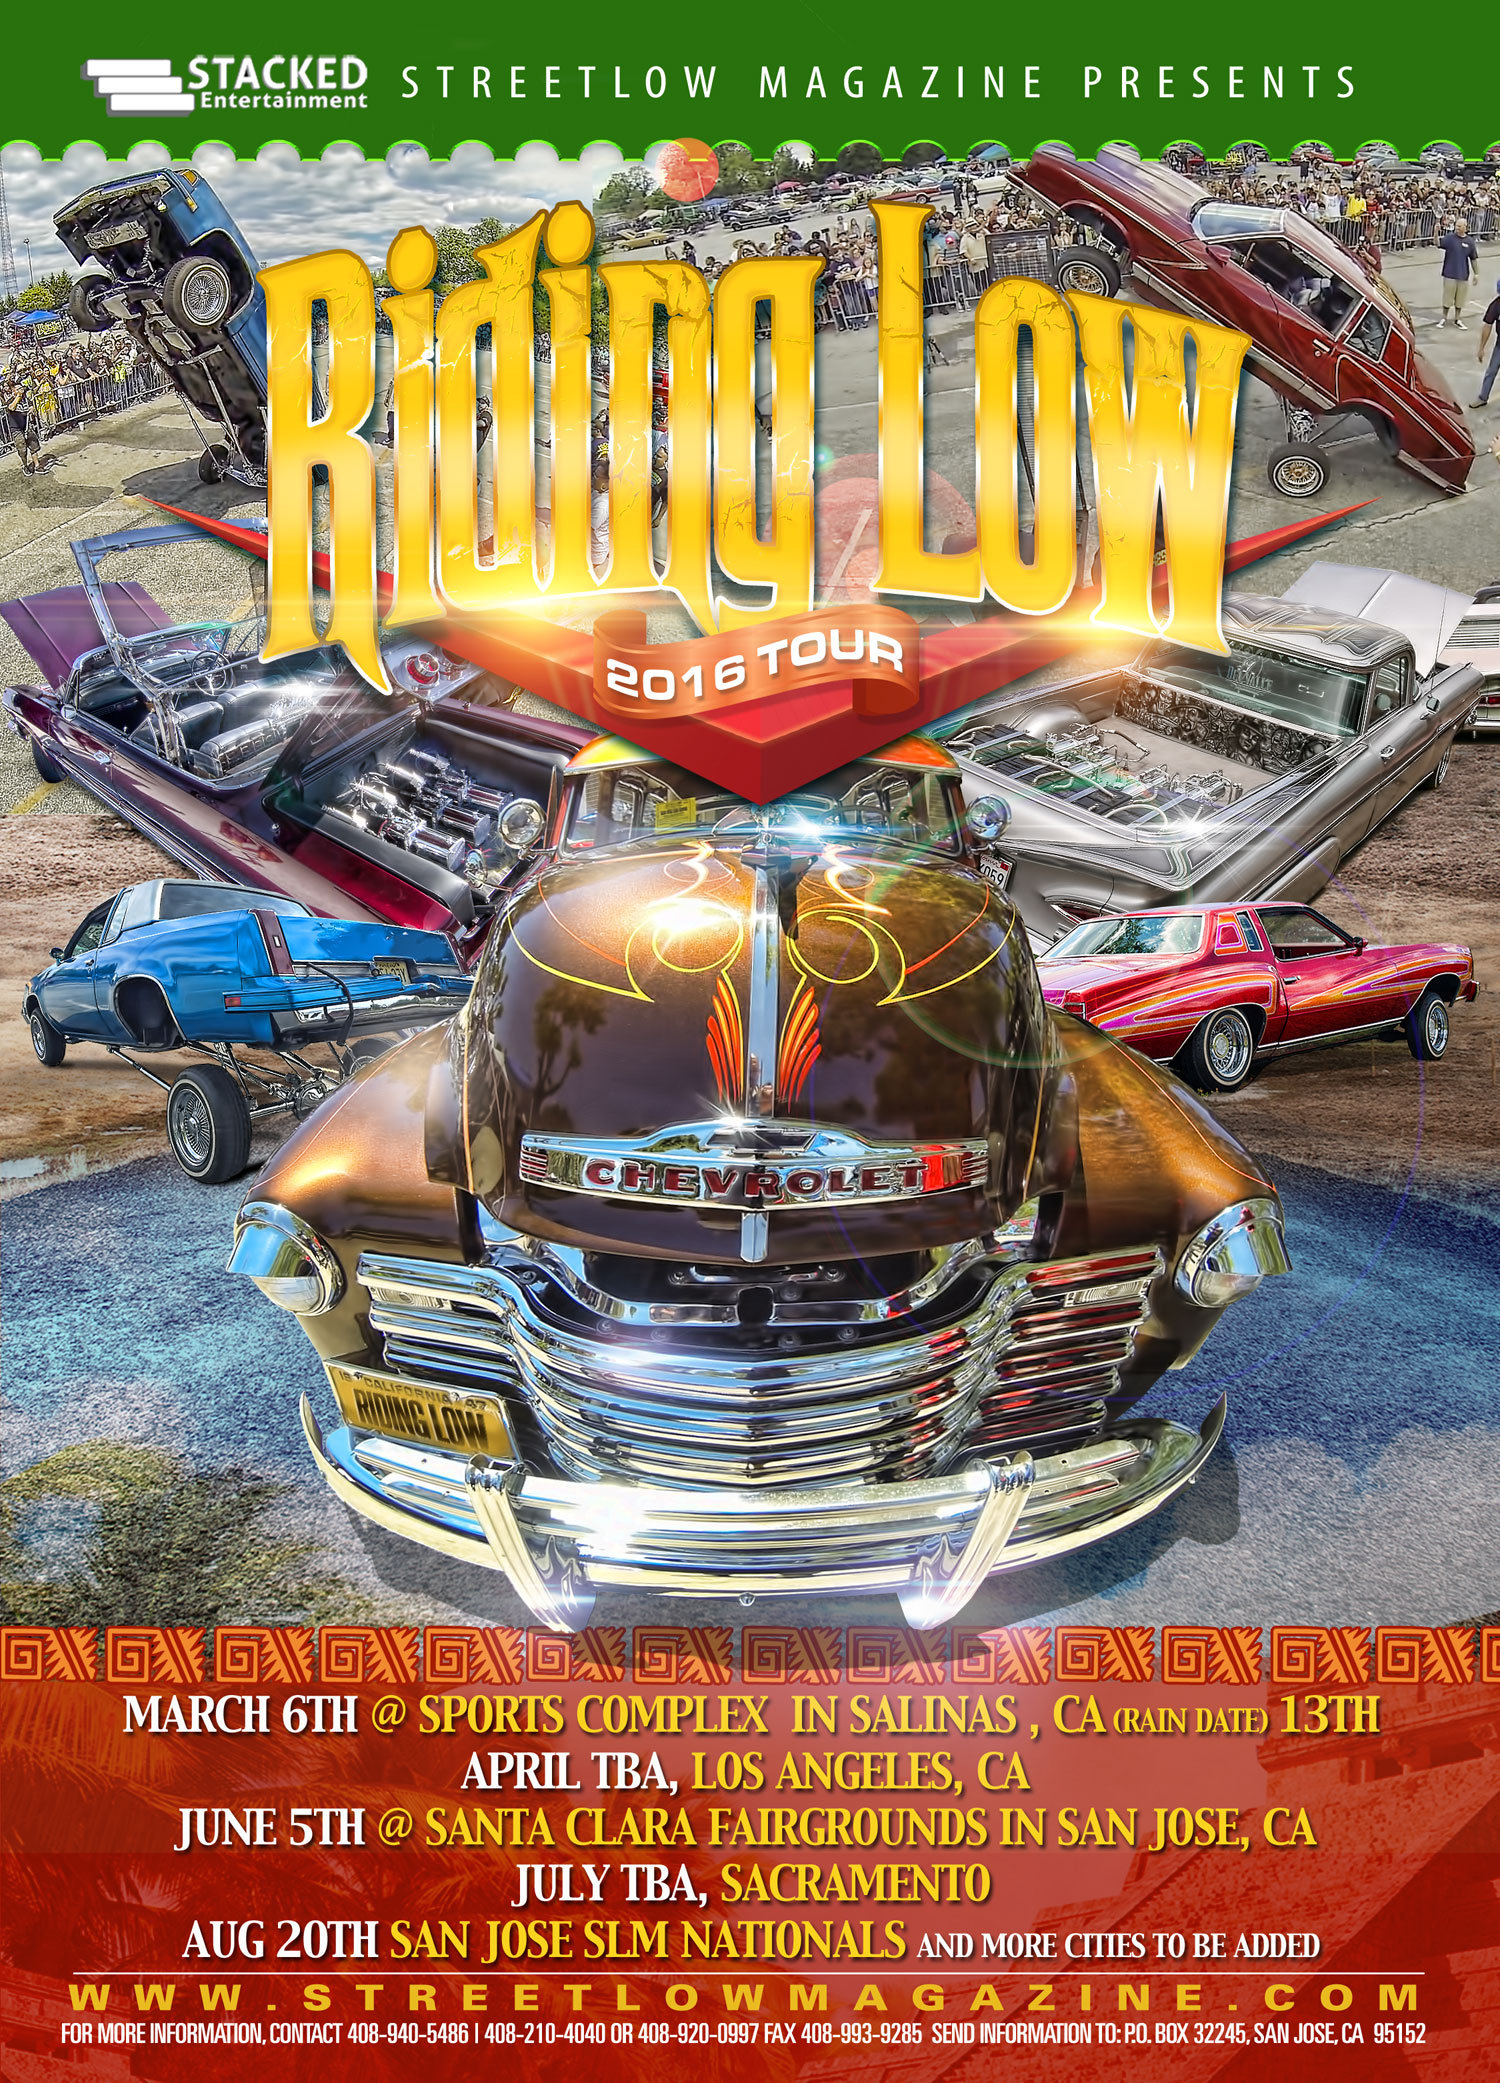 Riding-Low-tour